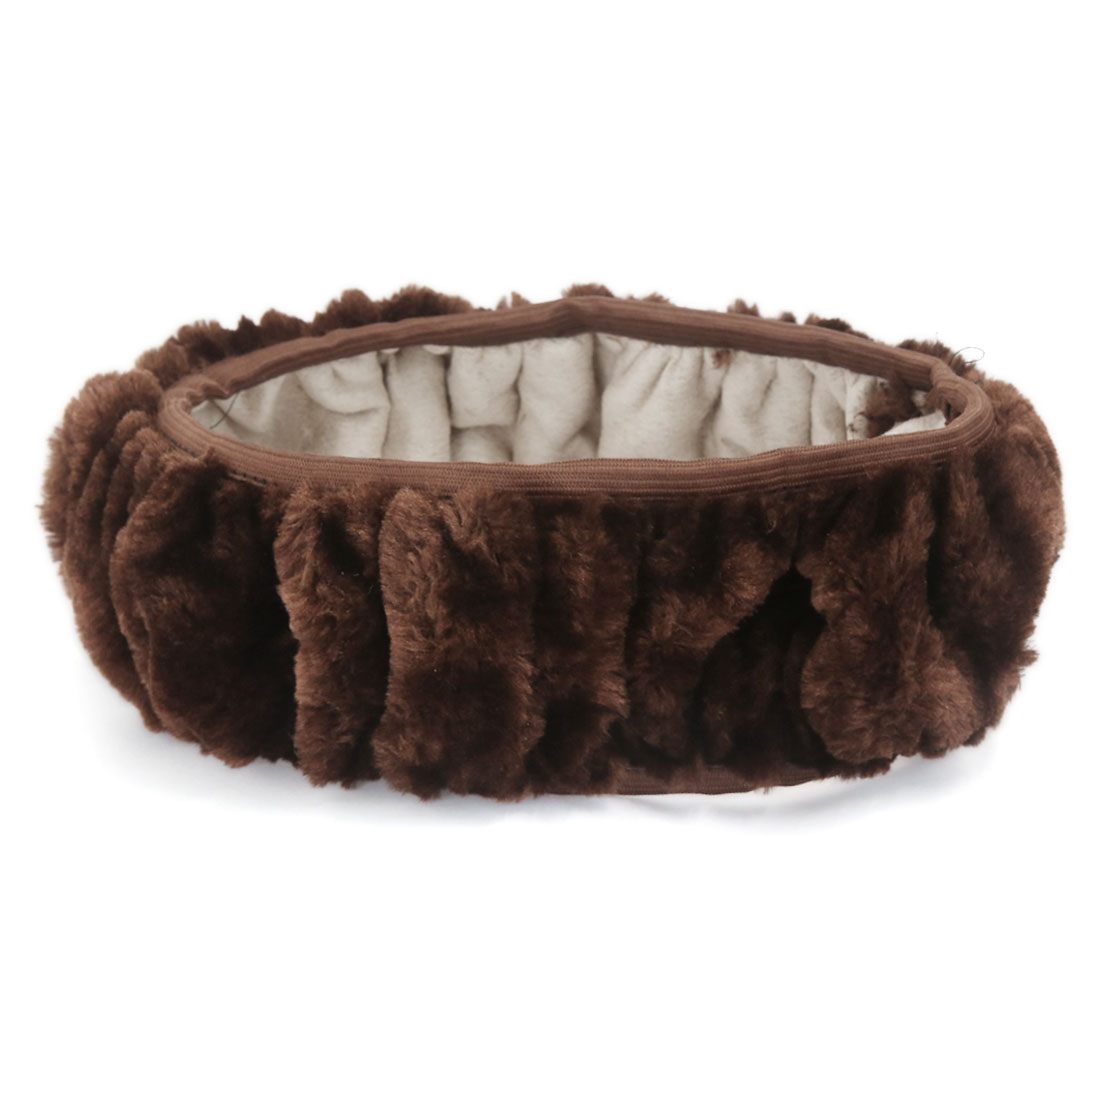 Universal Comfort Plush Fuzzy Stretchy Steering Wheel Cover Coffee Color for Car